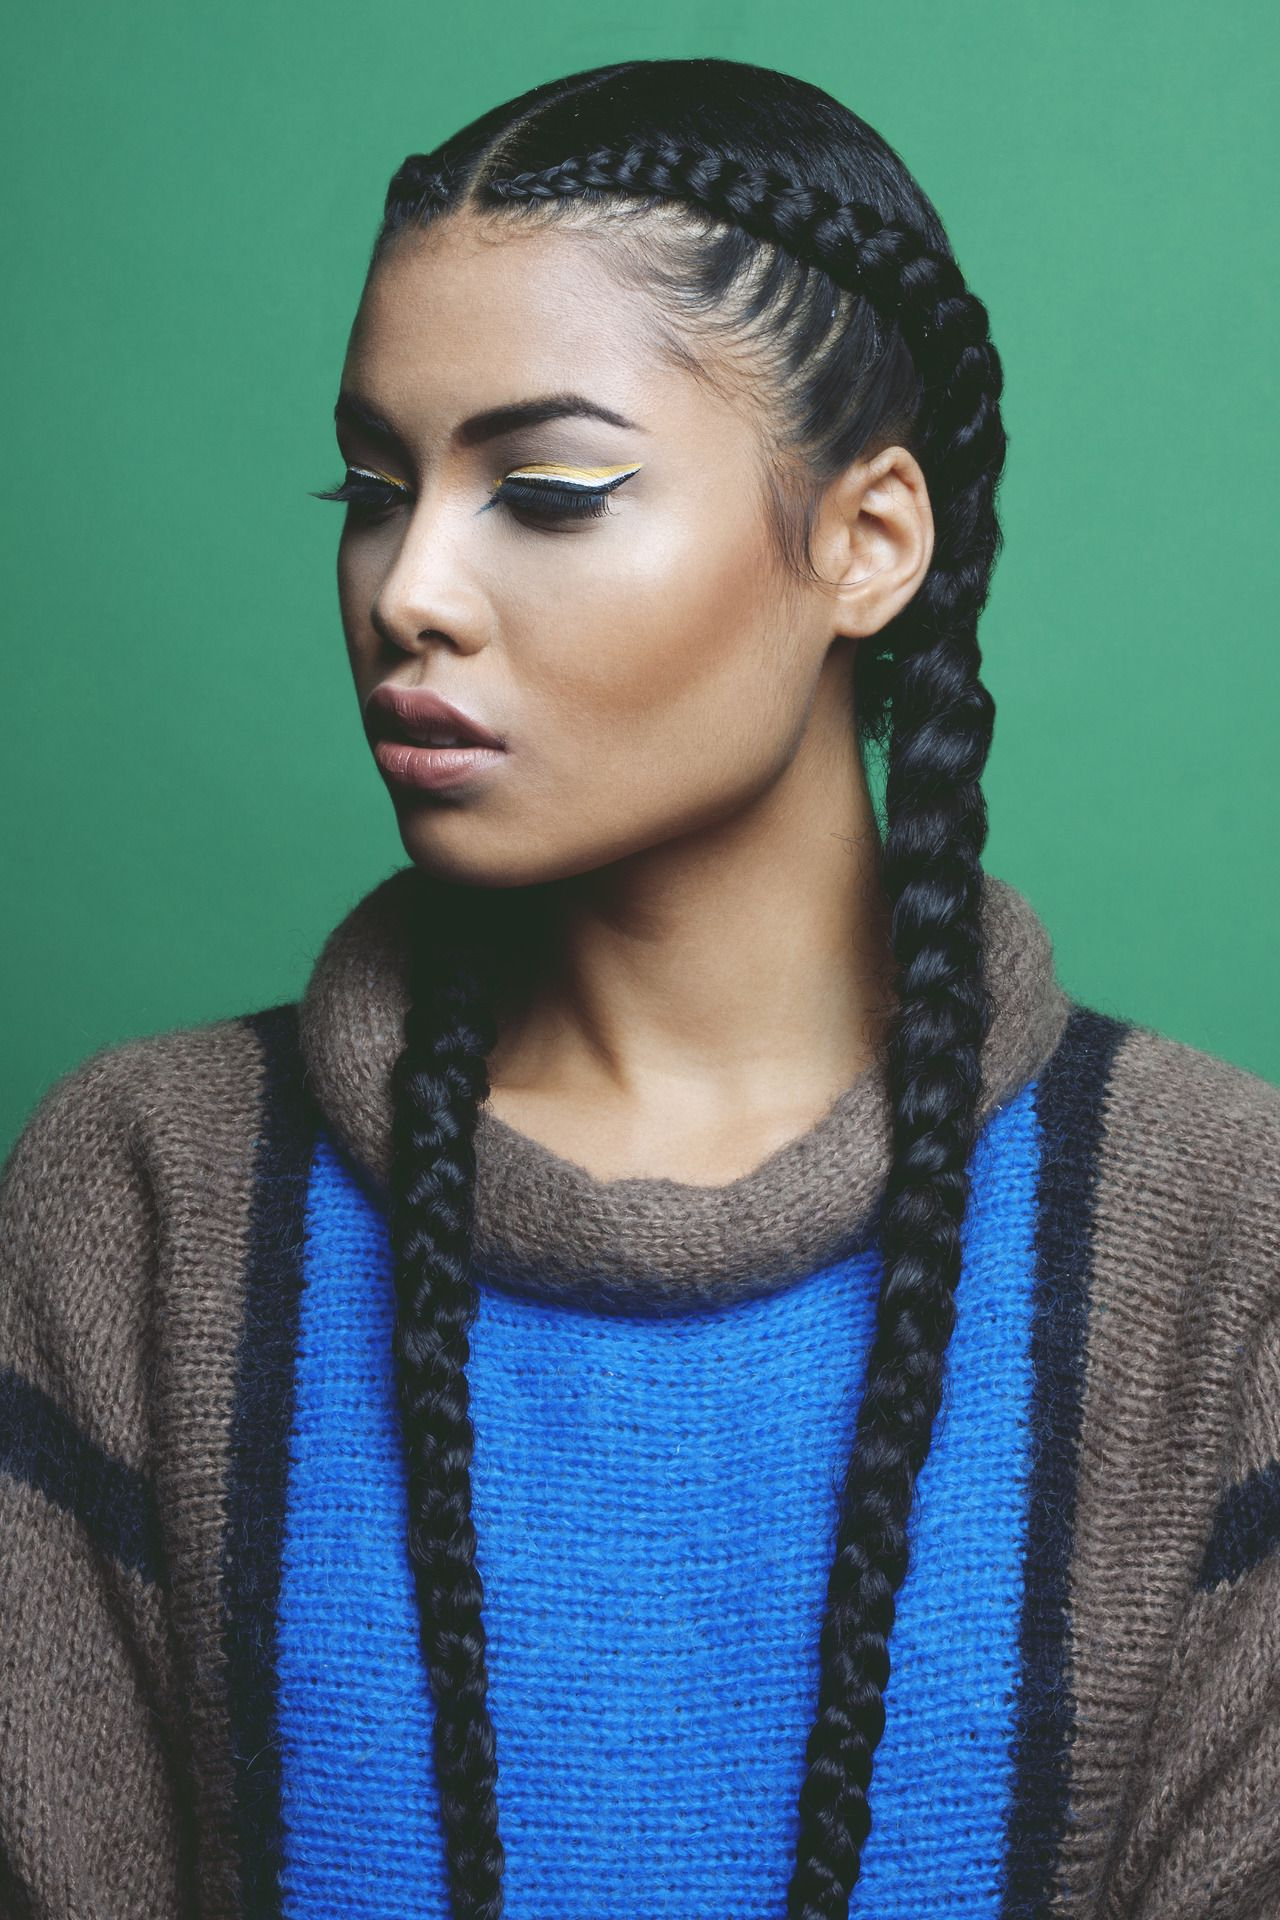 [%famous Long Hairstyles With Multiple Braids Intended For 8 Big Corn Row Styles We Are Loving On Pinterest [gallery|8 Big Corn Row Styles We Are Loving On Pinterest [gallery In Well Liked Long Hairstyles With Multiple Braids%] (View 2 of 20)